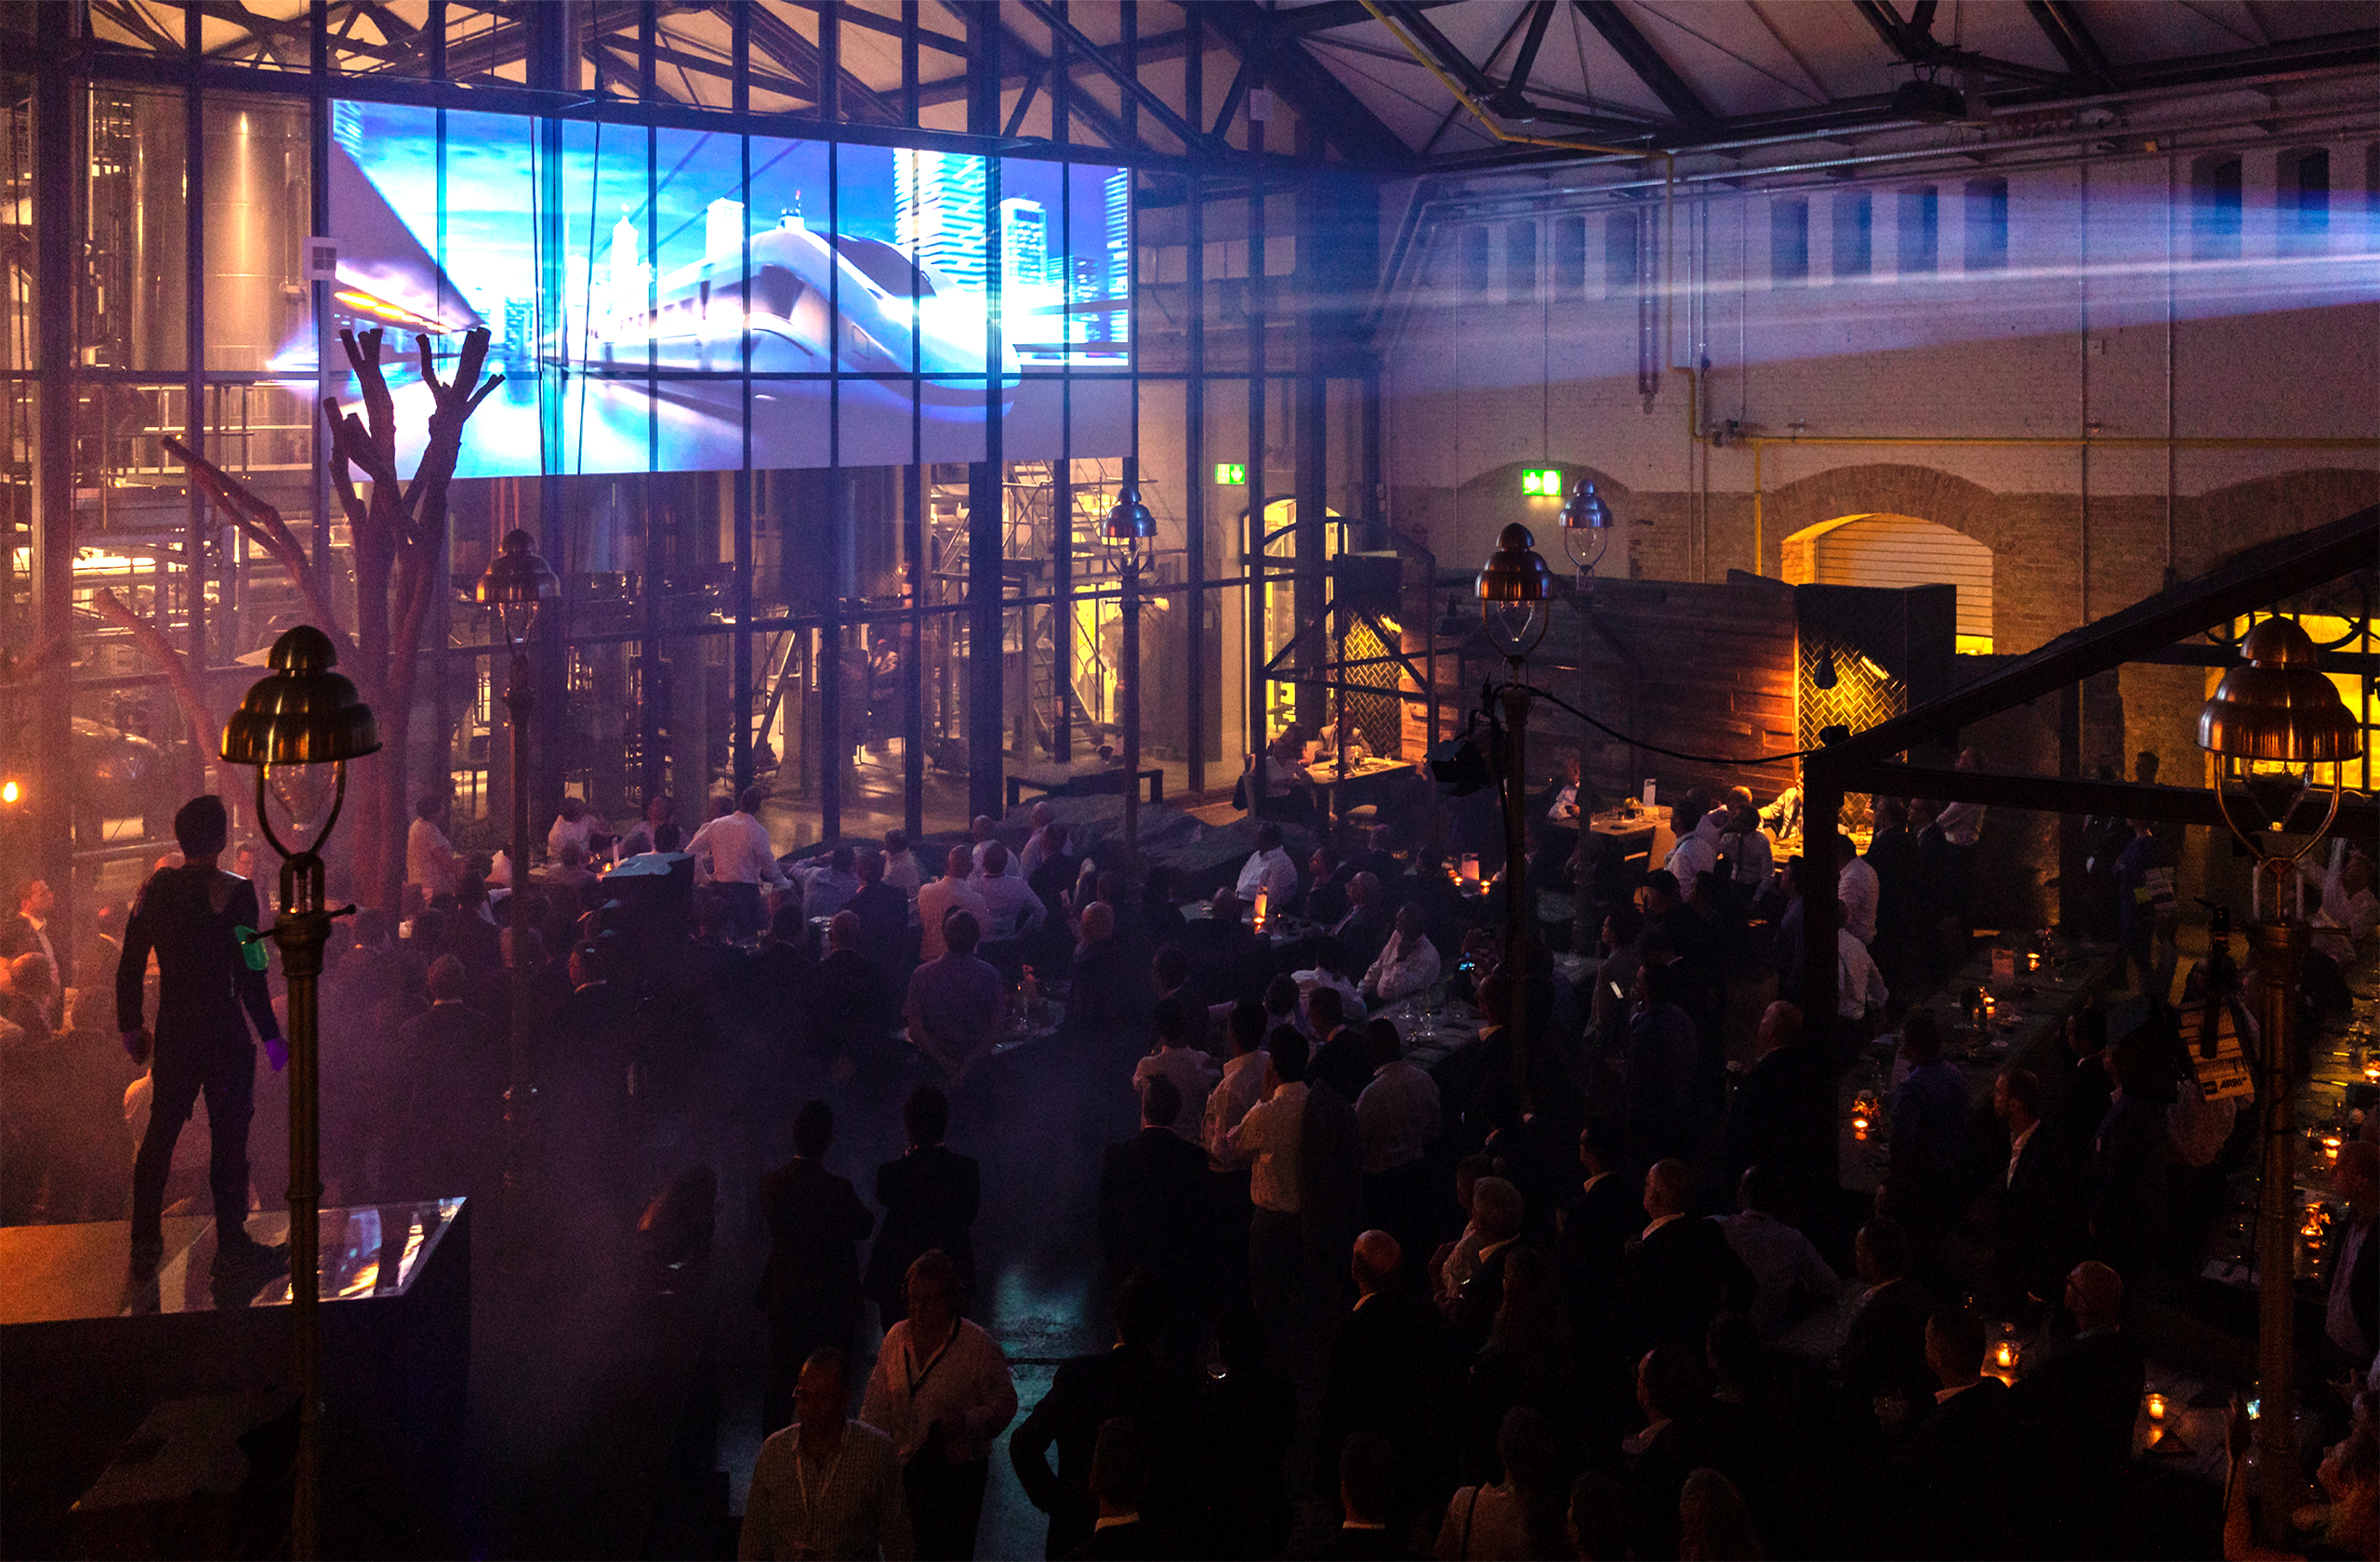 Siemens Mobility with prio event management at the Innotrans 2018 VIP evening event at the stone brewing berlin.